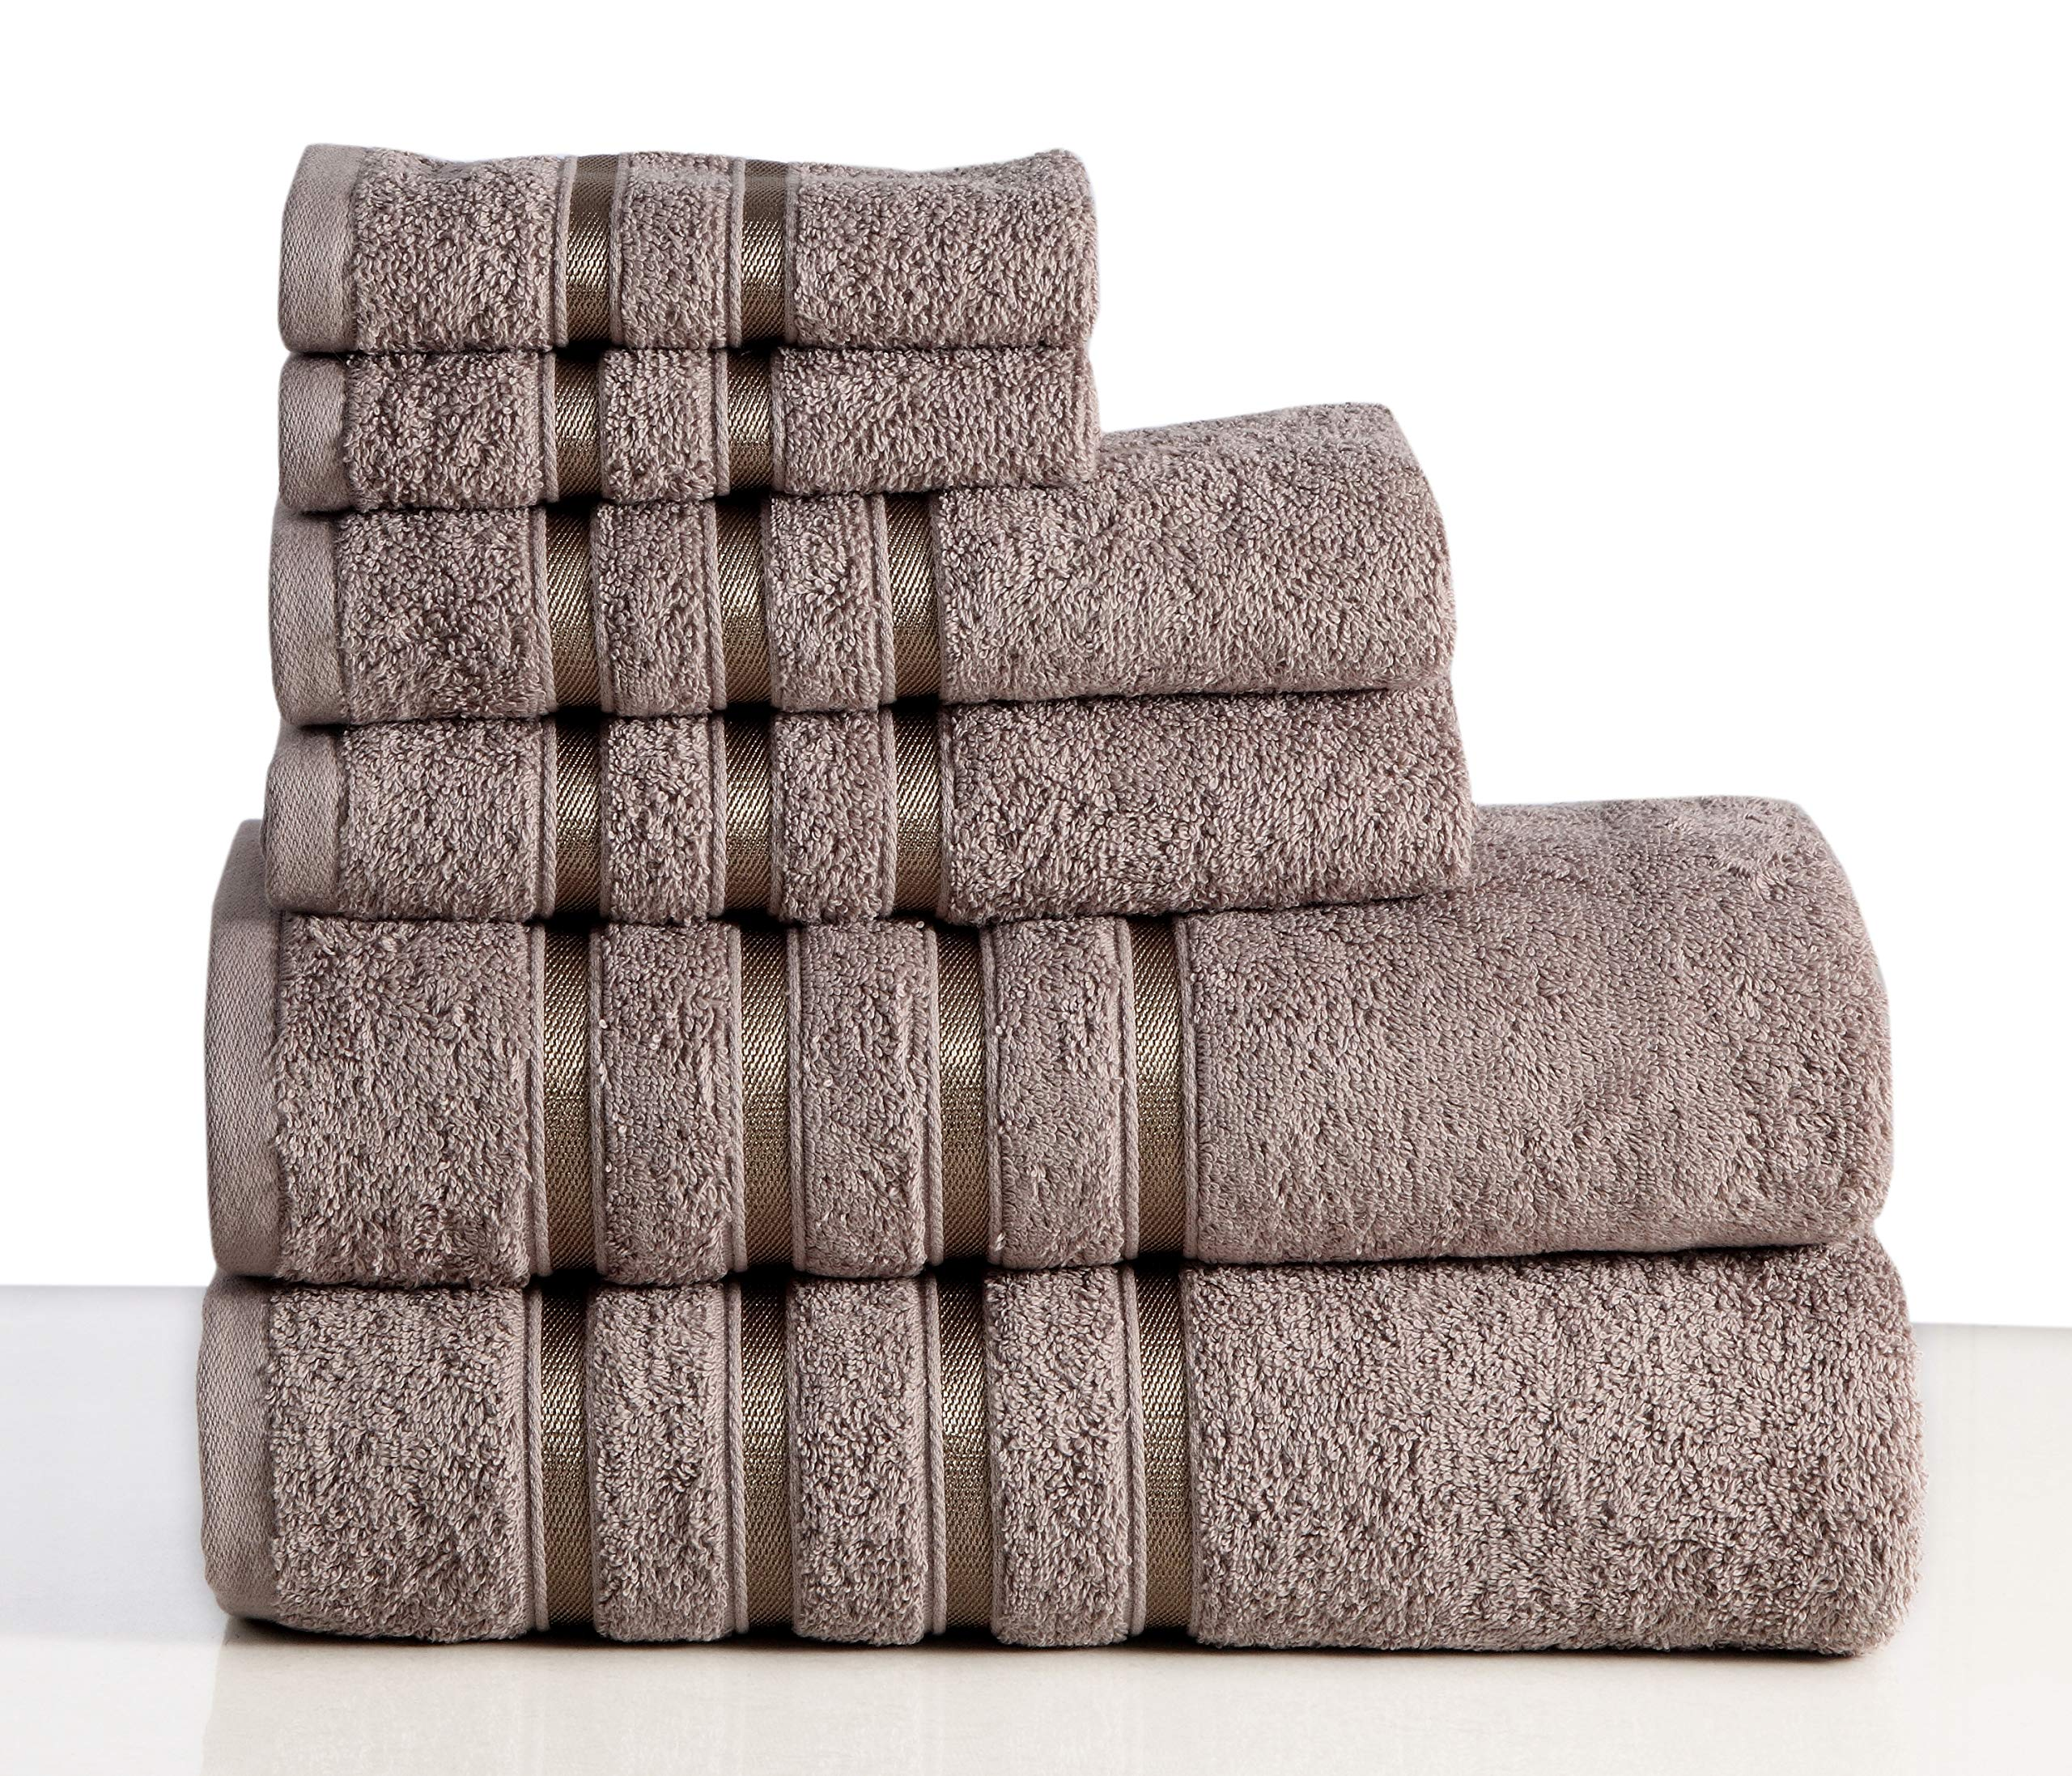 Wicker Park 550 GSM Ultra Soft Luxurious 6-Piece Towel Set (Platinum): 2 Bath Towels, 2 Hand Towels, 2 Washcloths, Long-Staple Combed Cotton, Spa Hotel Quality, Super Absorbent, Machine Washable